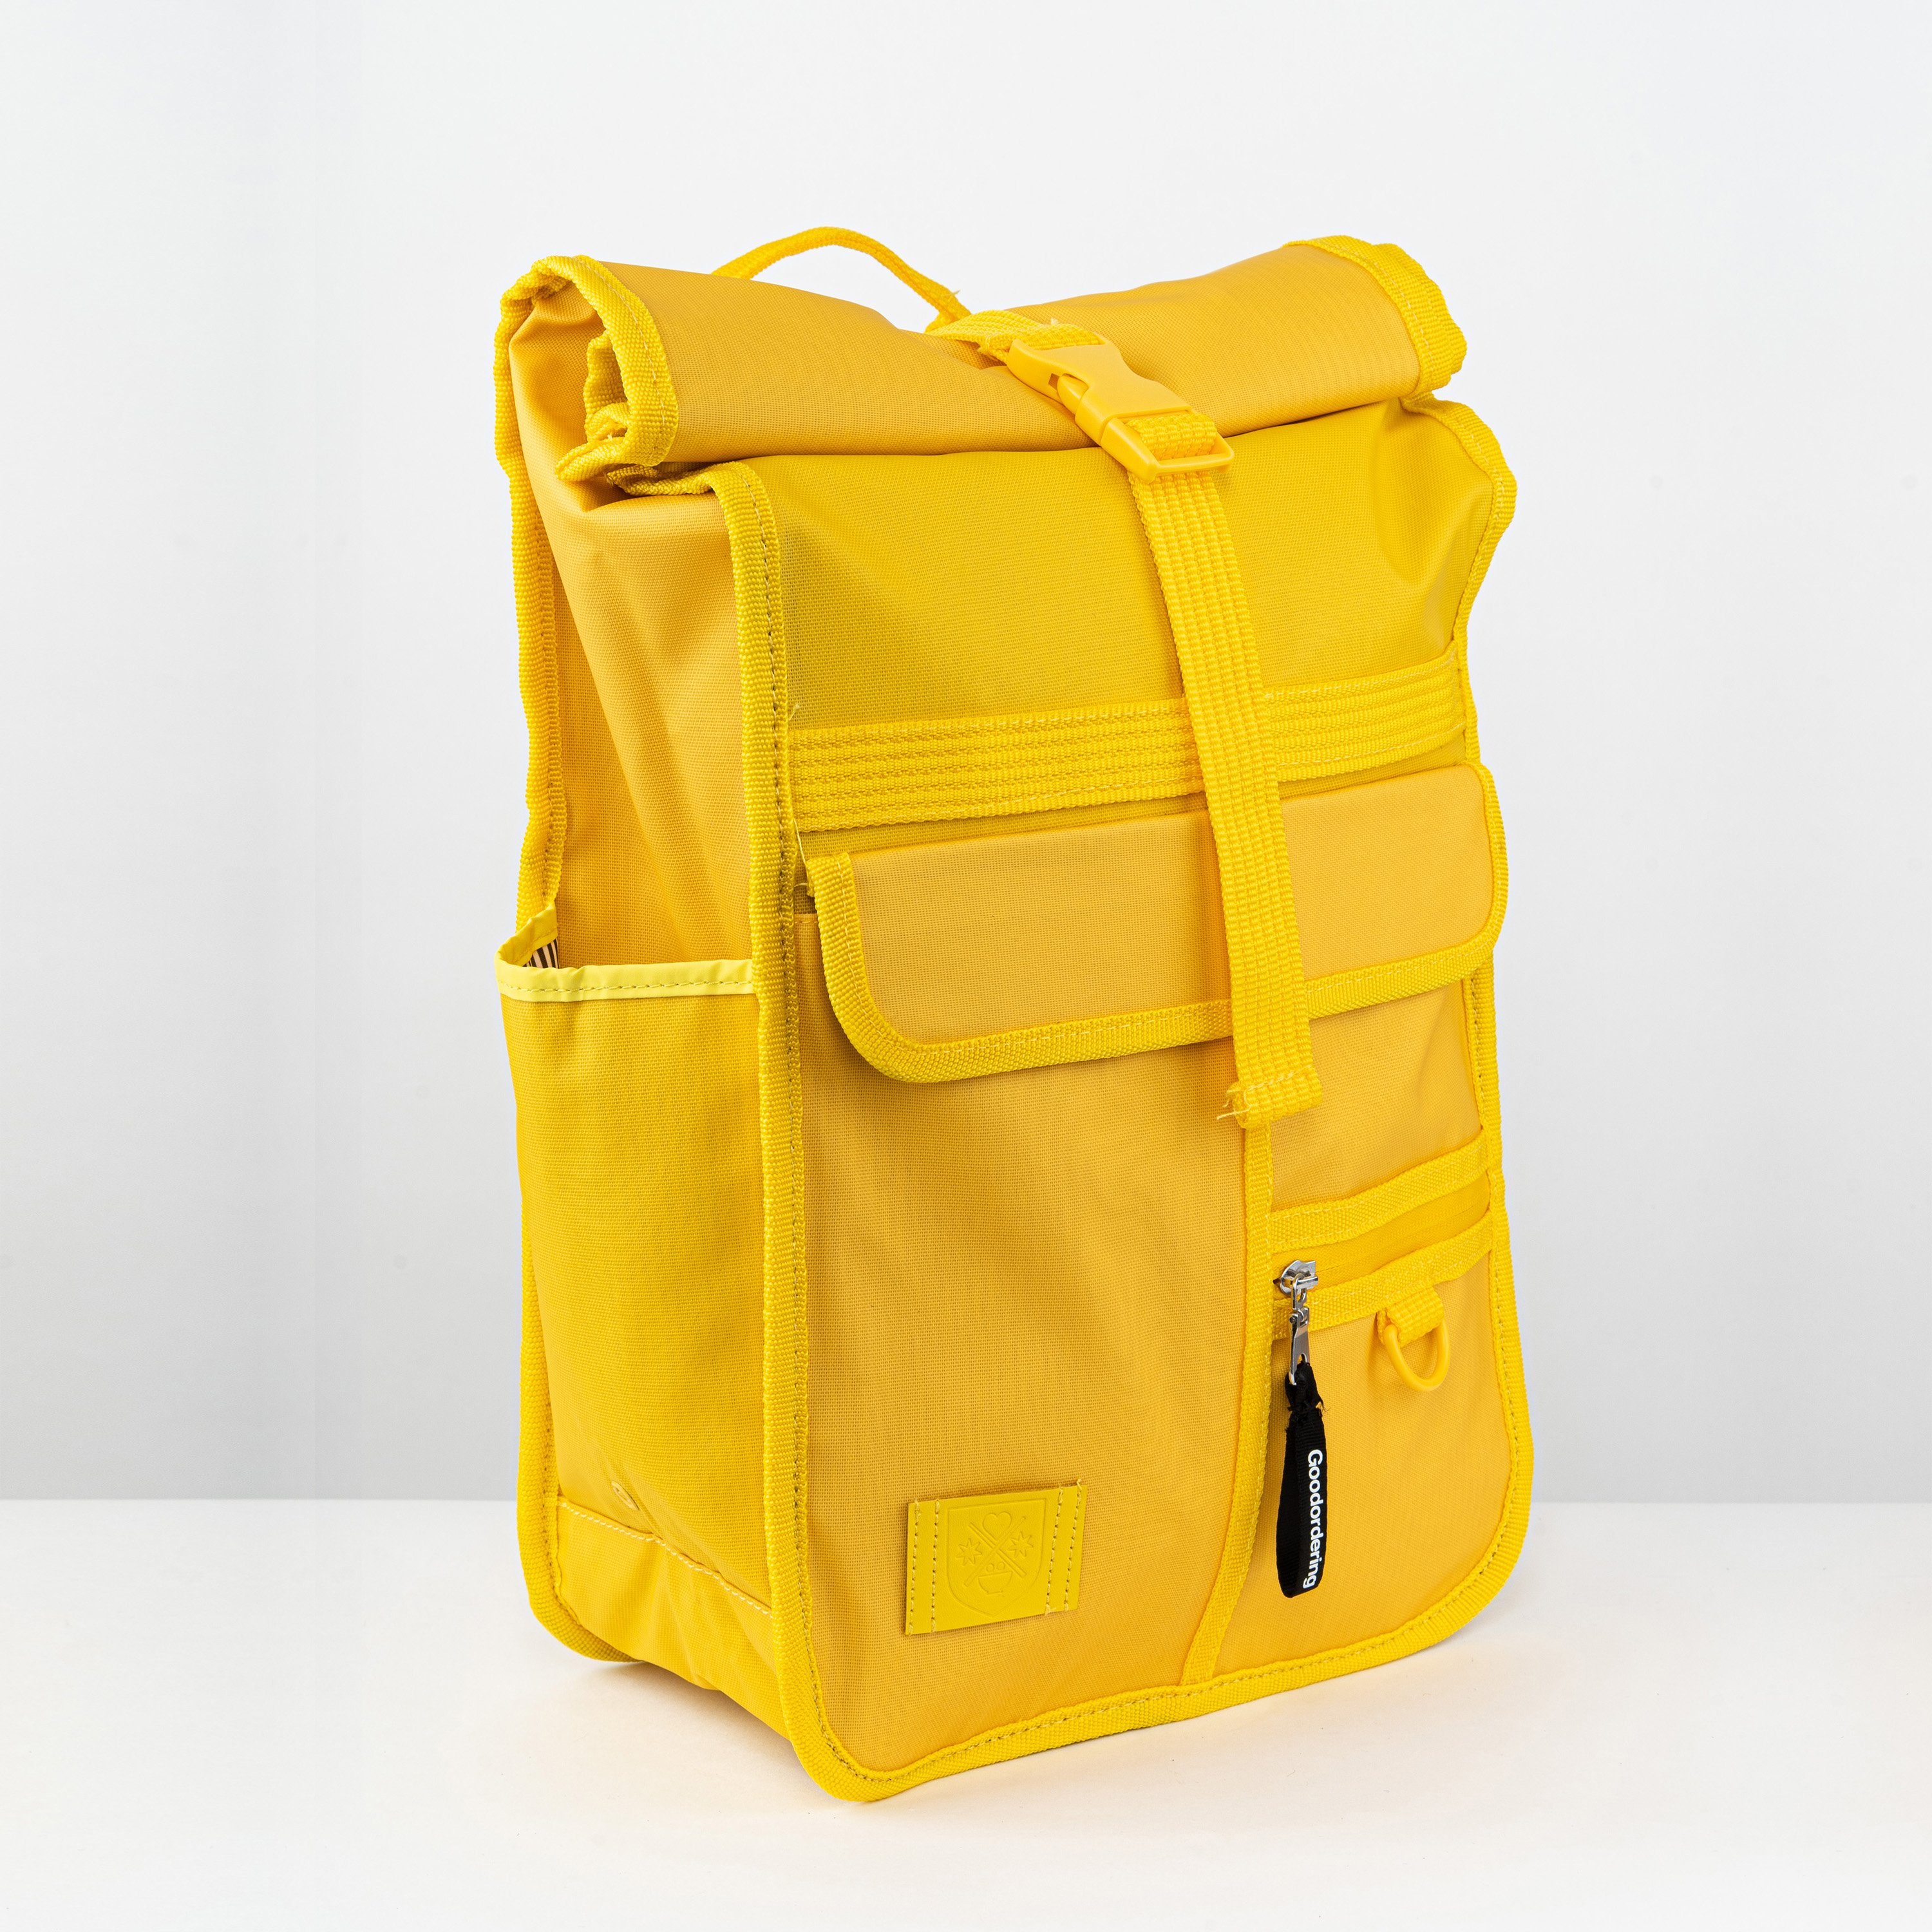 Monochrome Rolltop Backpack Mini Yellow